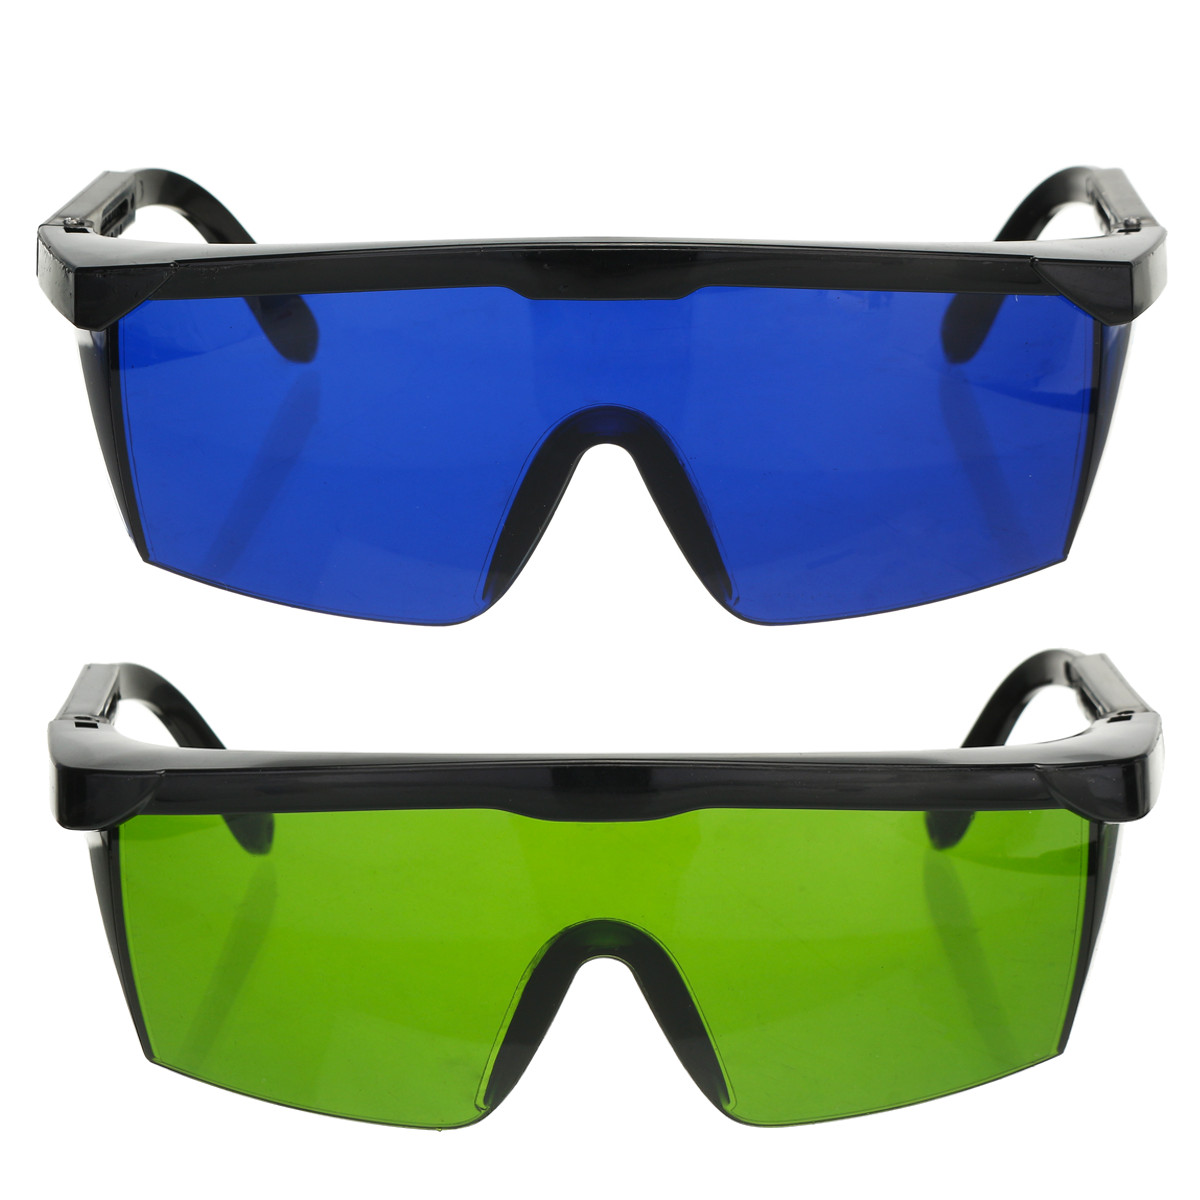 Laser Safety Glasses Blue Green 190nm-1200nm Welding Laser IPL Beauty Instrument Protection Eyewear Eye Protective Glasses